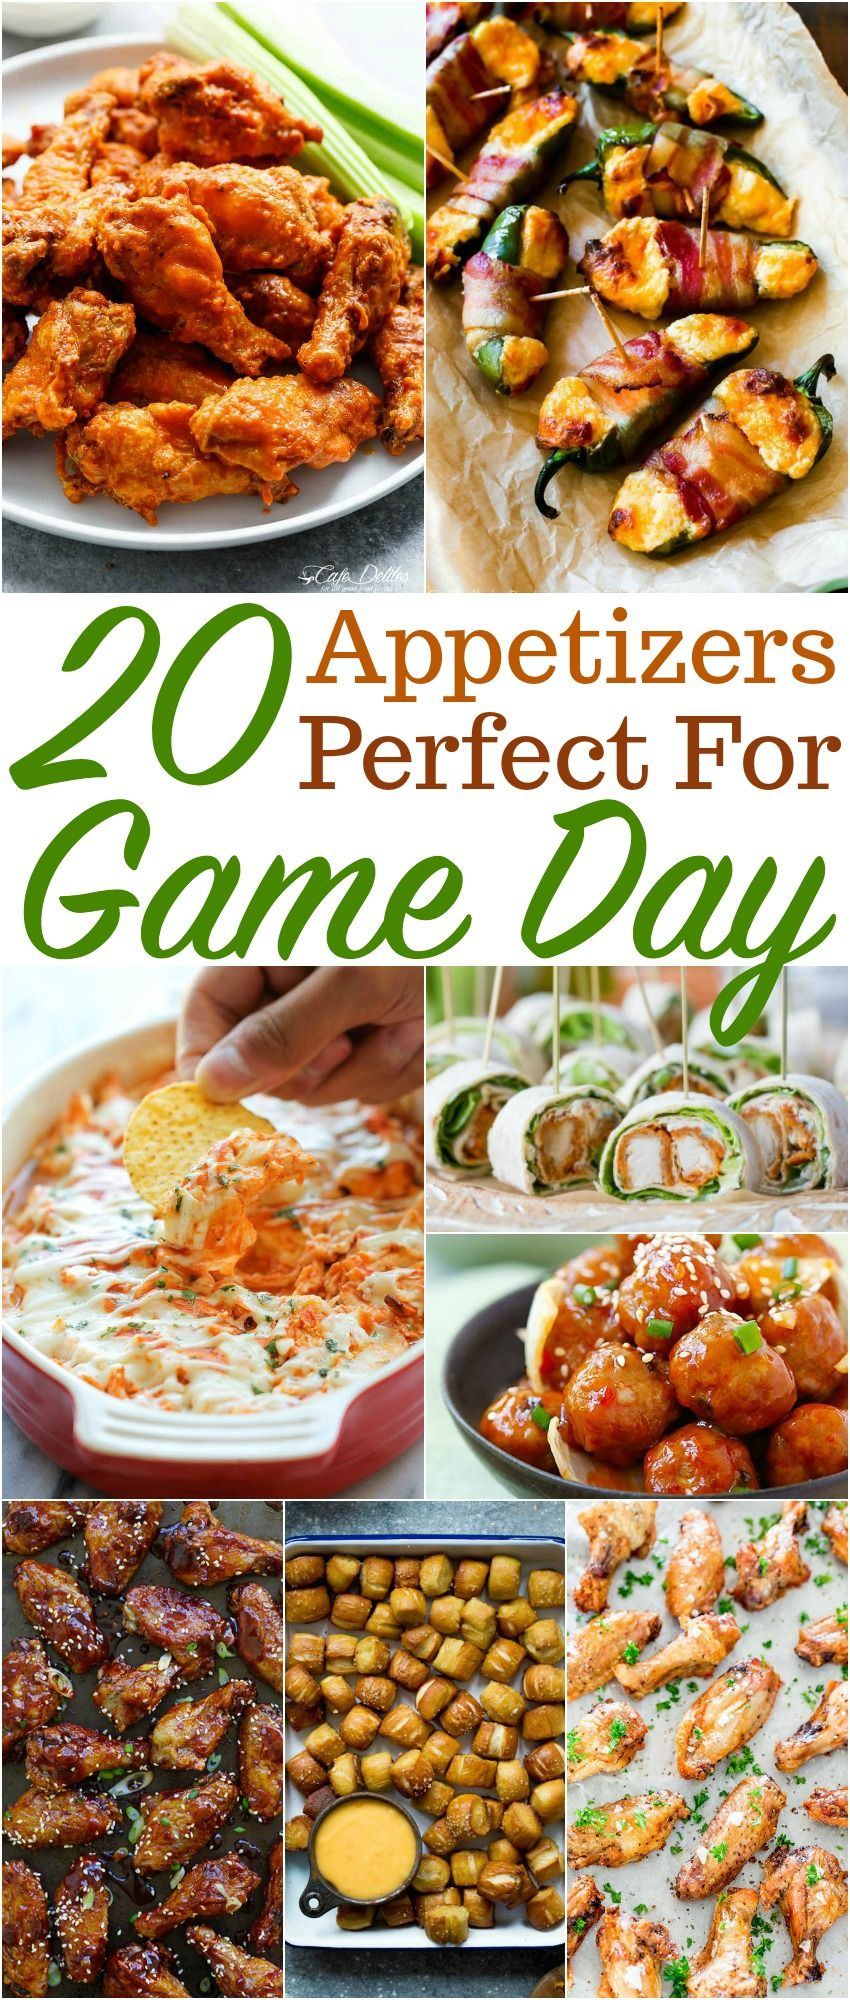 Easy Superbowl or Game Day Snack Ideas Football party